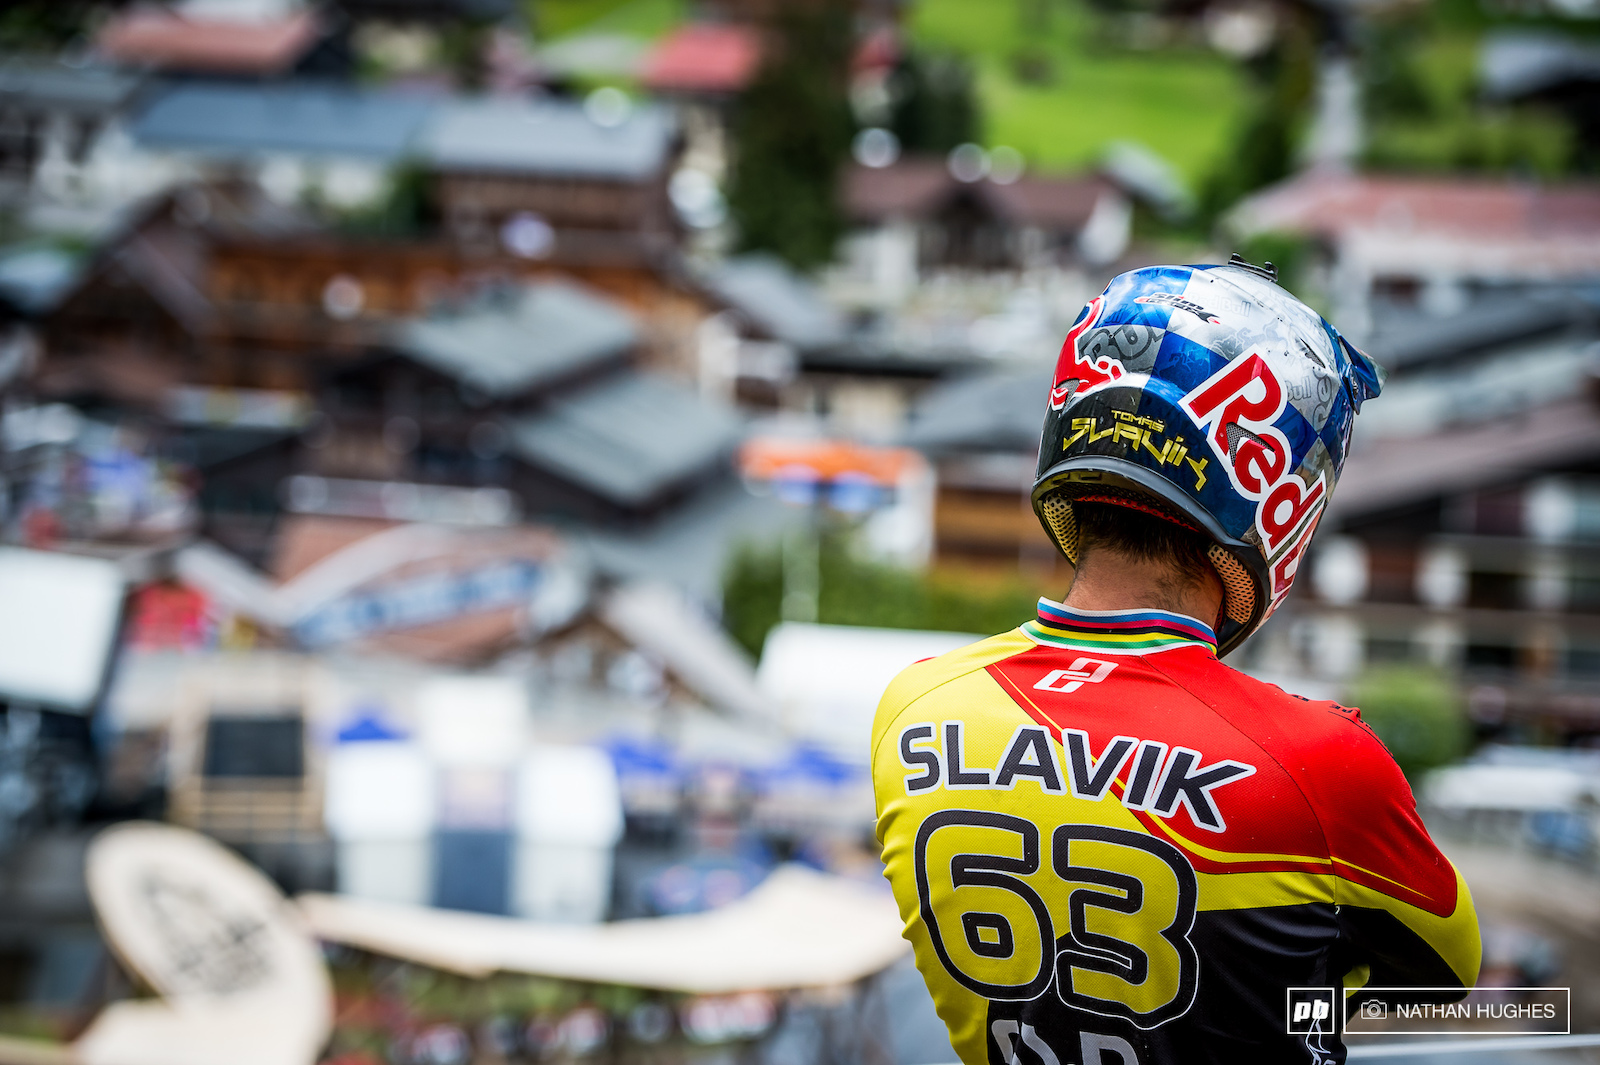 Former 4x World Champ Tomas Slavik Czeching out the course below.